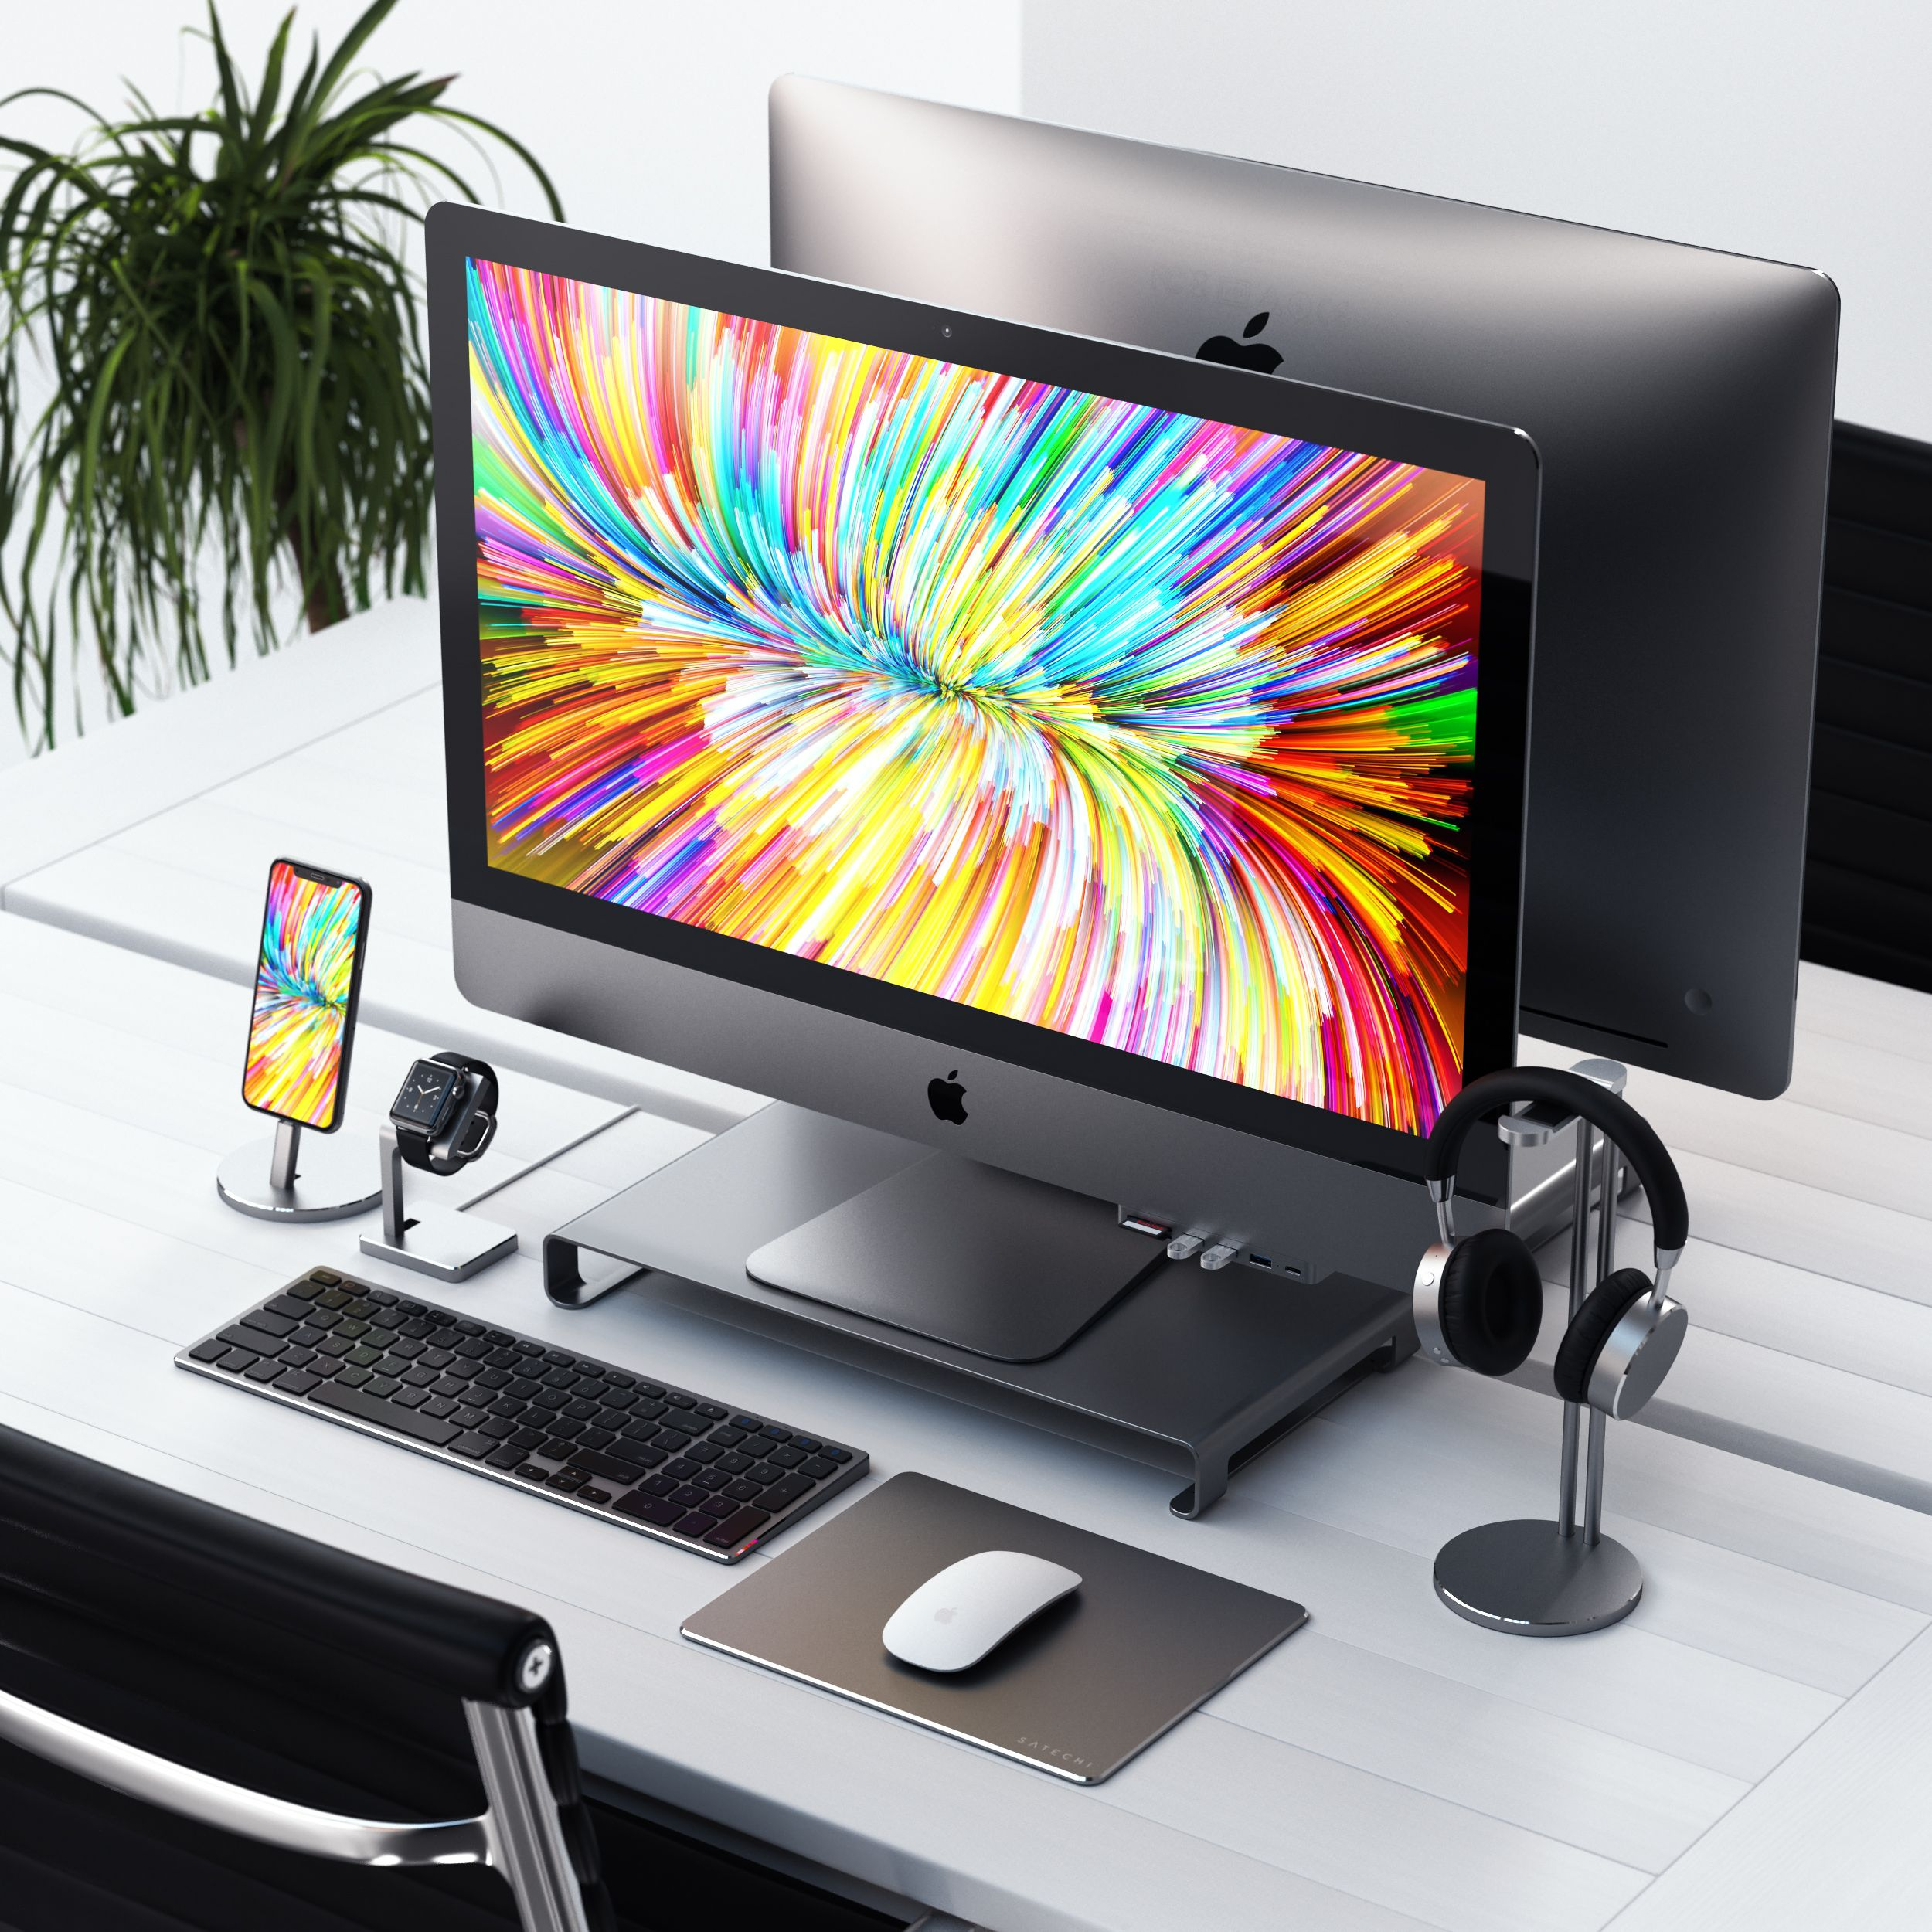 What Do You Guys Think Of This Setup Or Lifemadeeasy Imac Iphone Tech Accessories Imac Desk Imac Desk Setup Desktop Setup